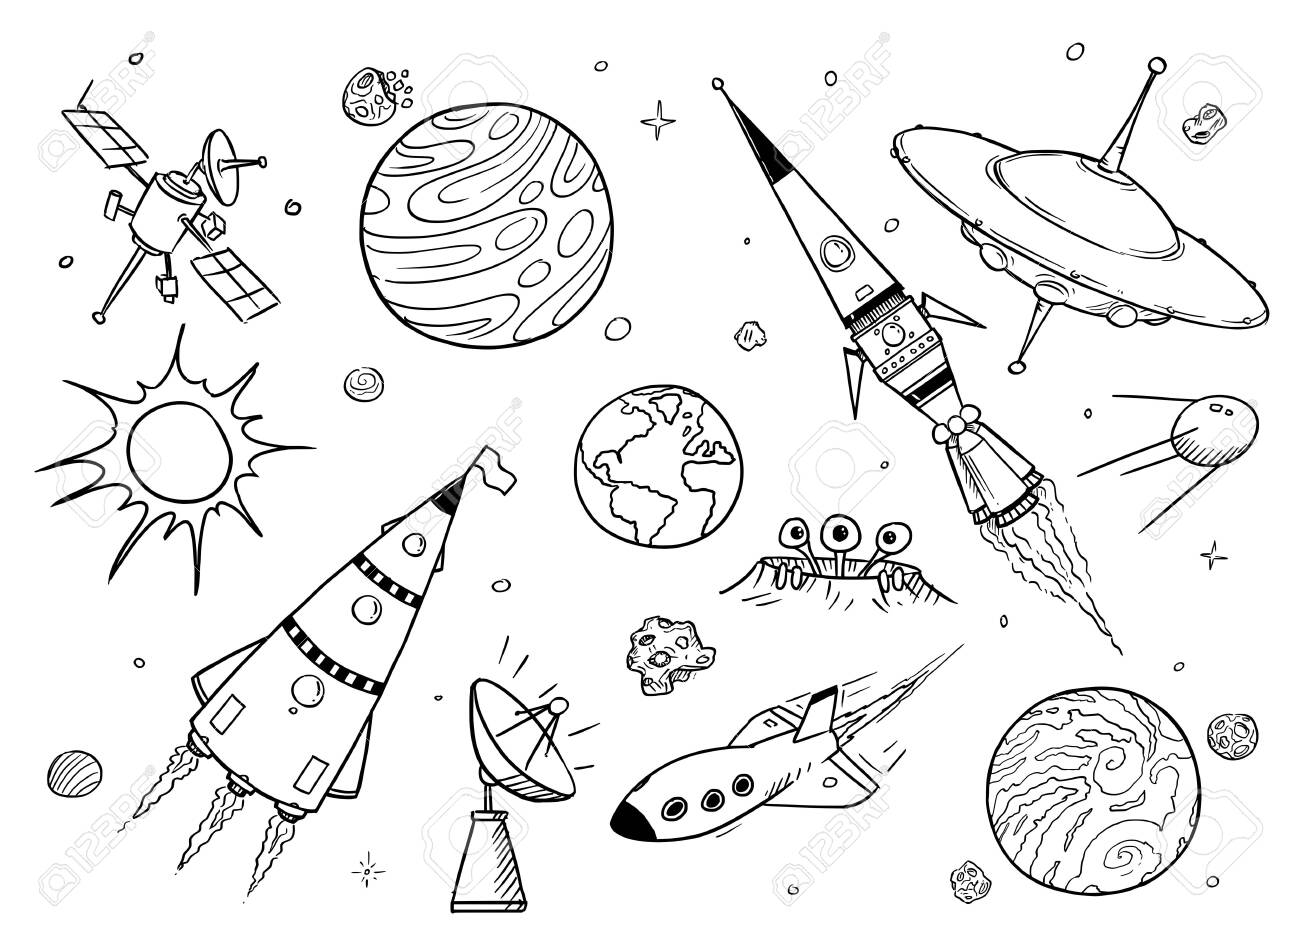 Set of cartoon vector drawings of space props like rockets, alien space ships or spaceships, UFO, planets and satellites. - 123734392